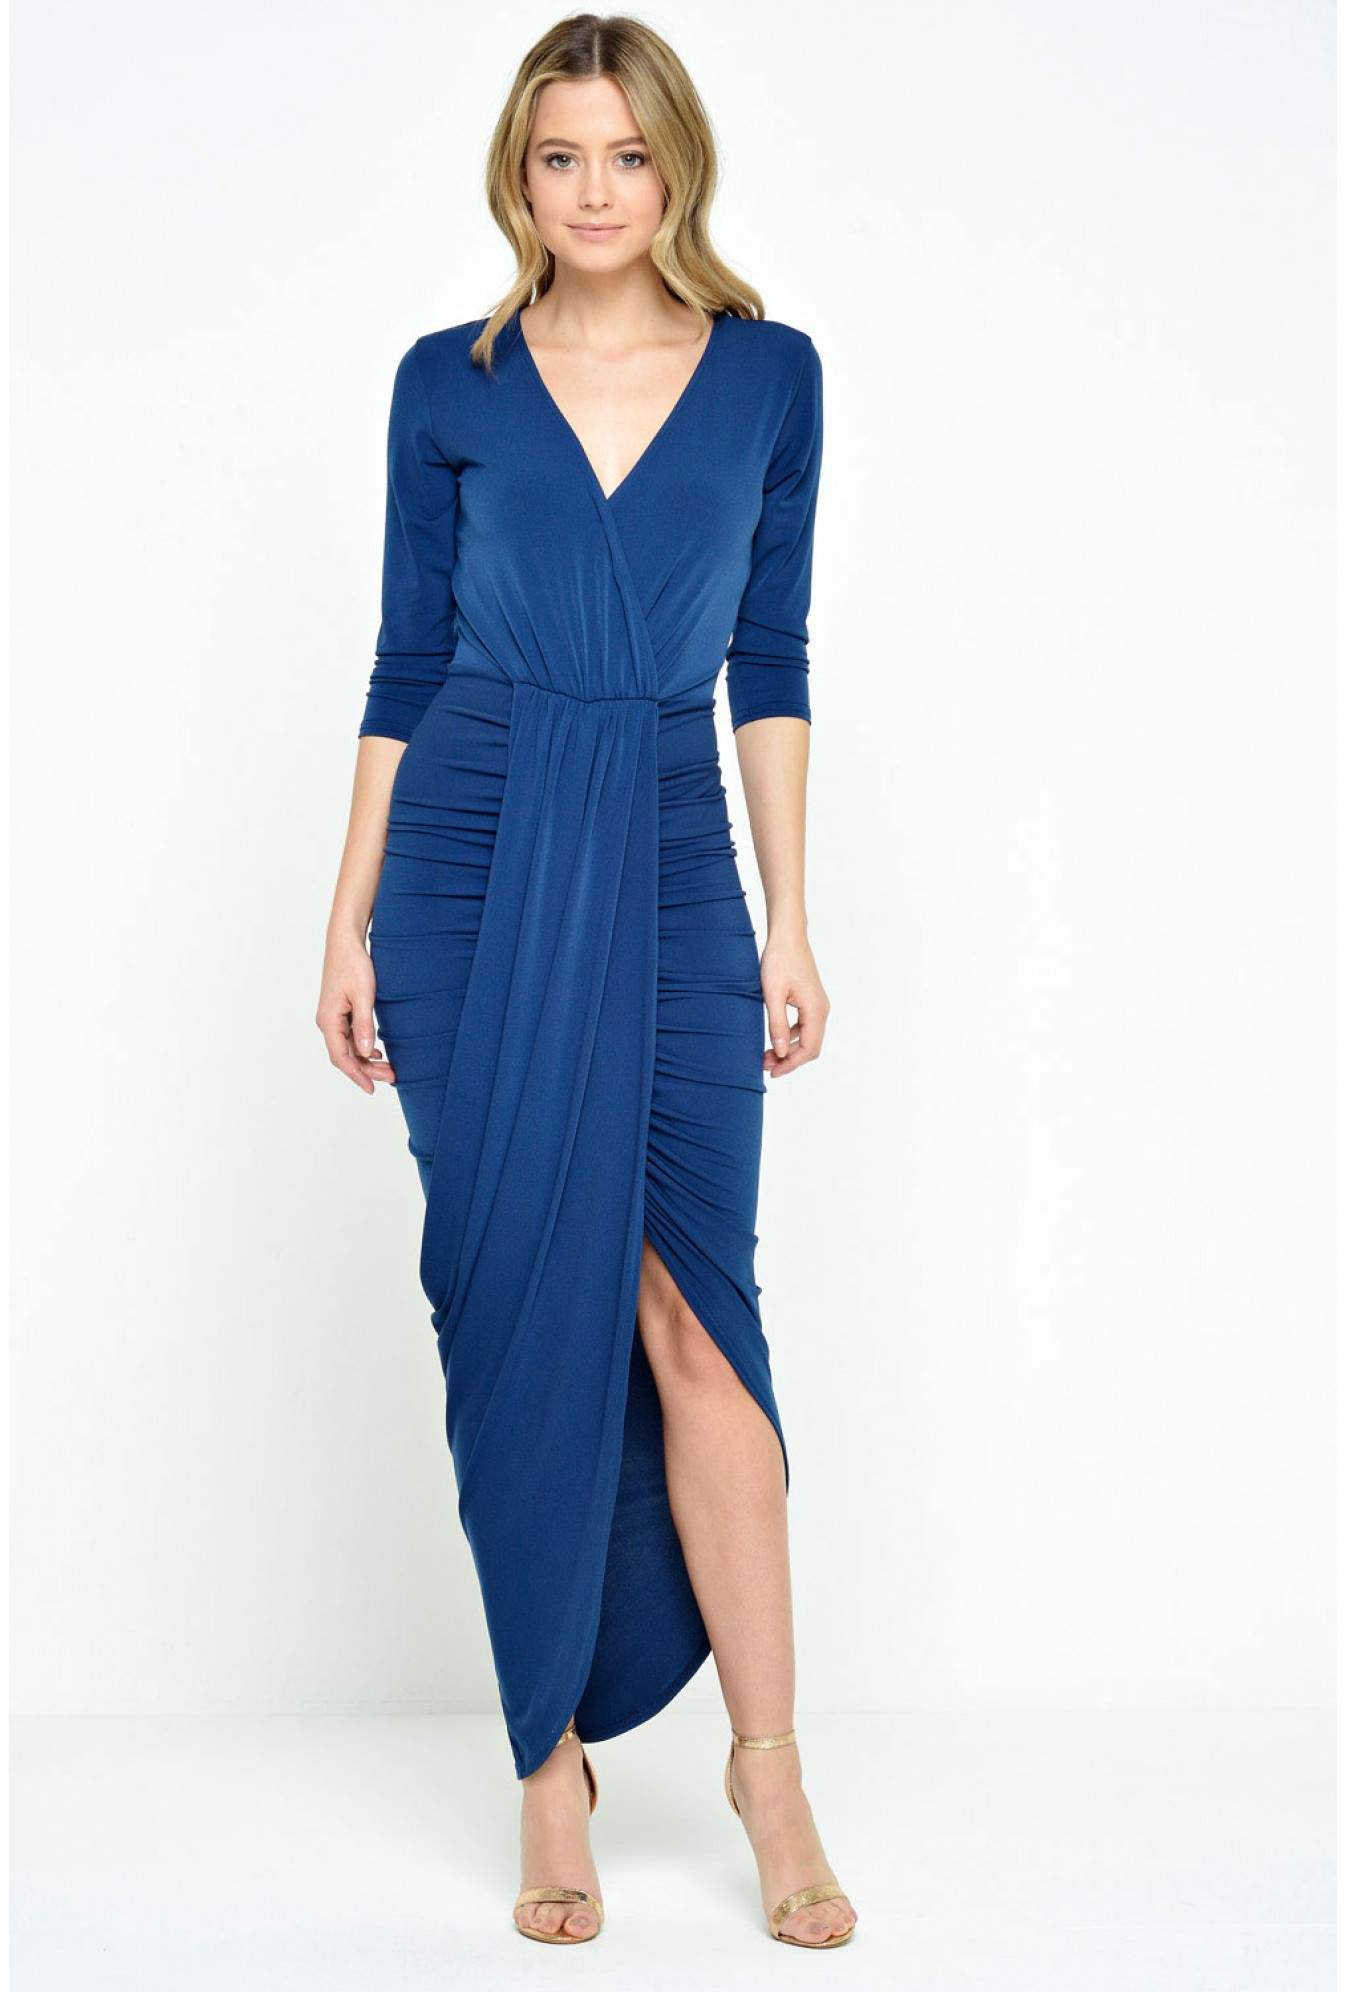 730cb276a59 John Zack Khloe Drape Front Midi Dress in Navy